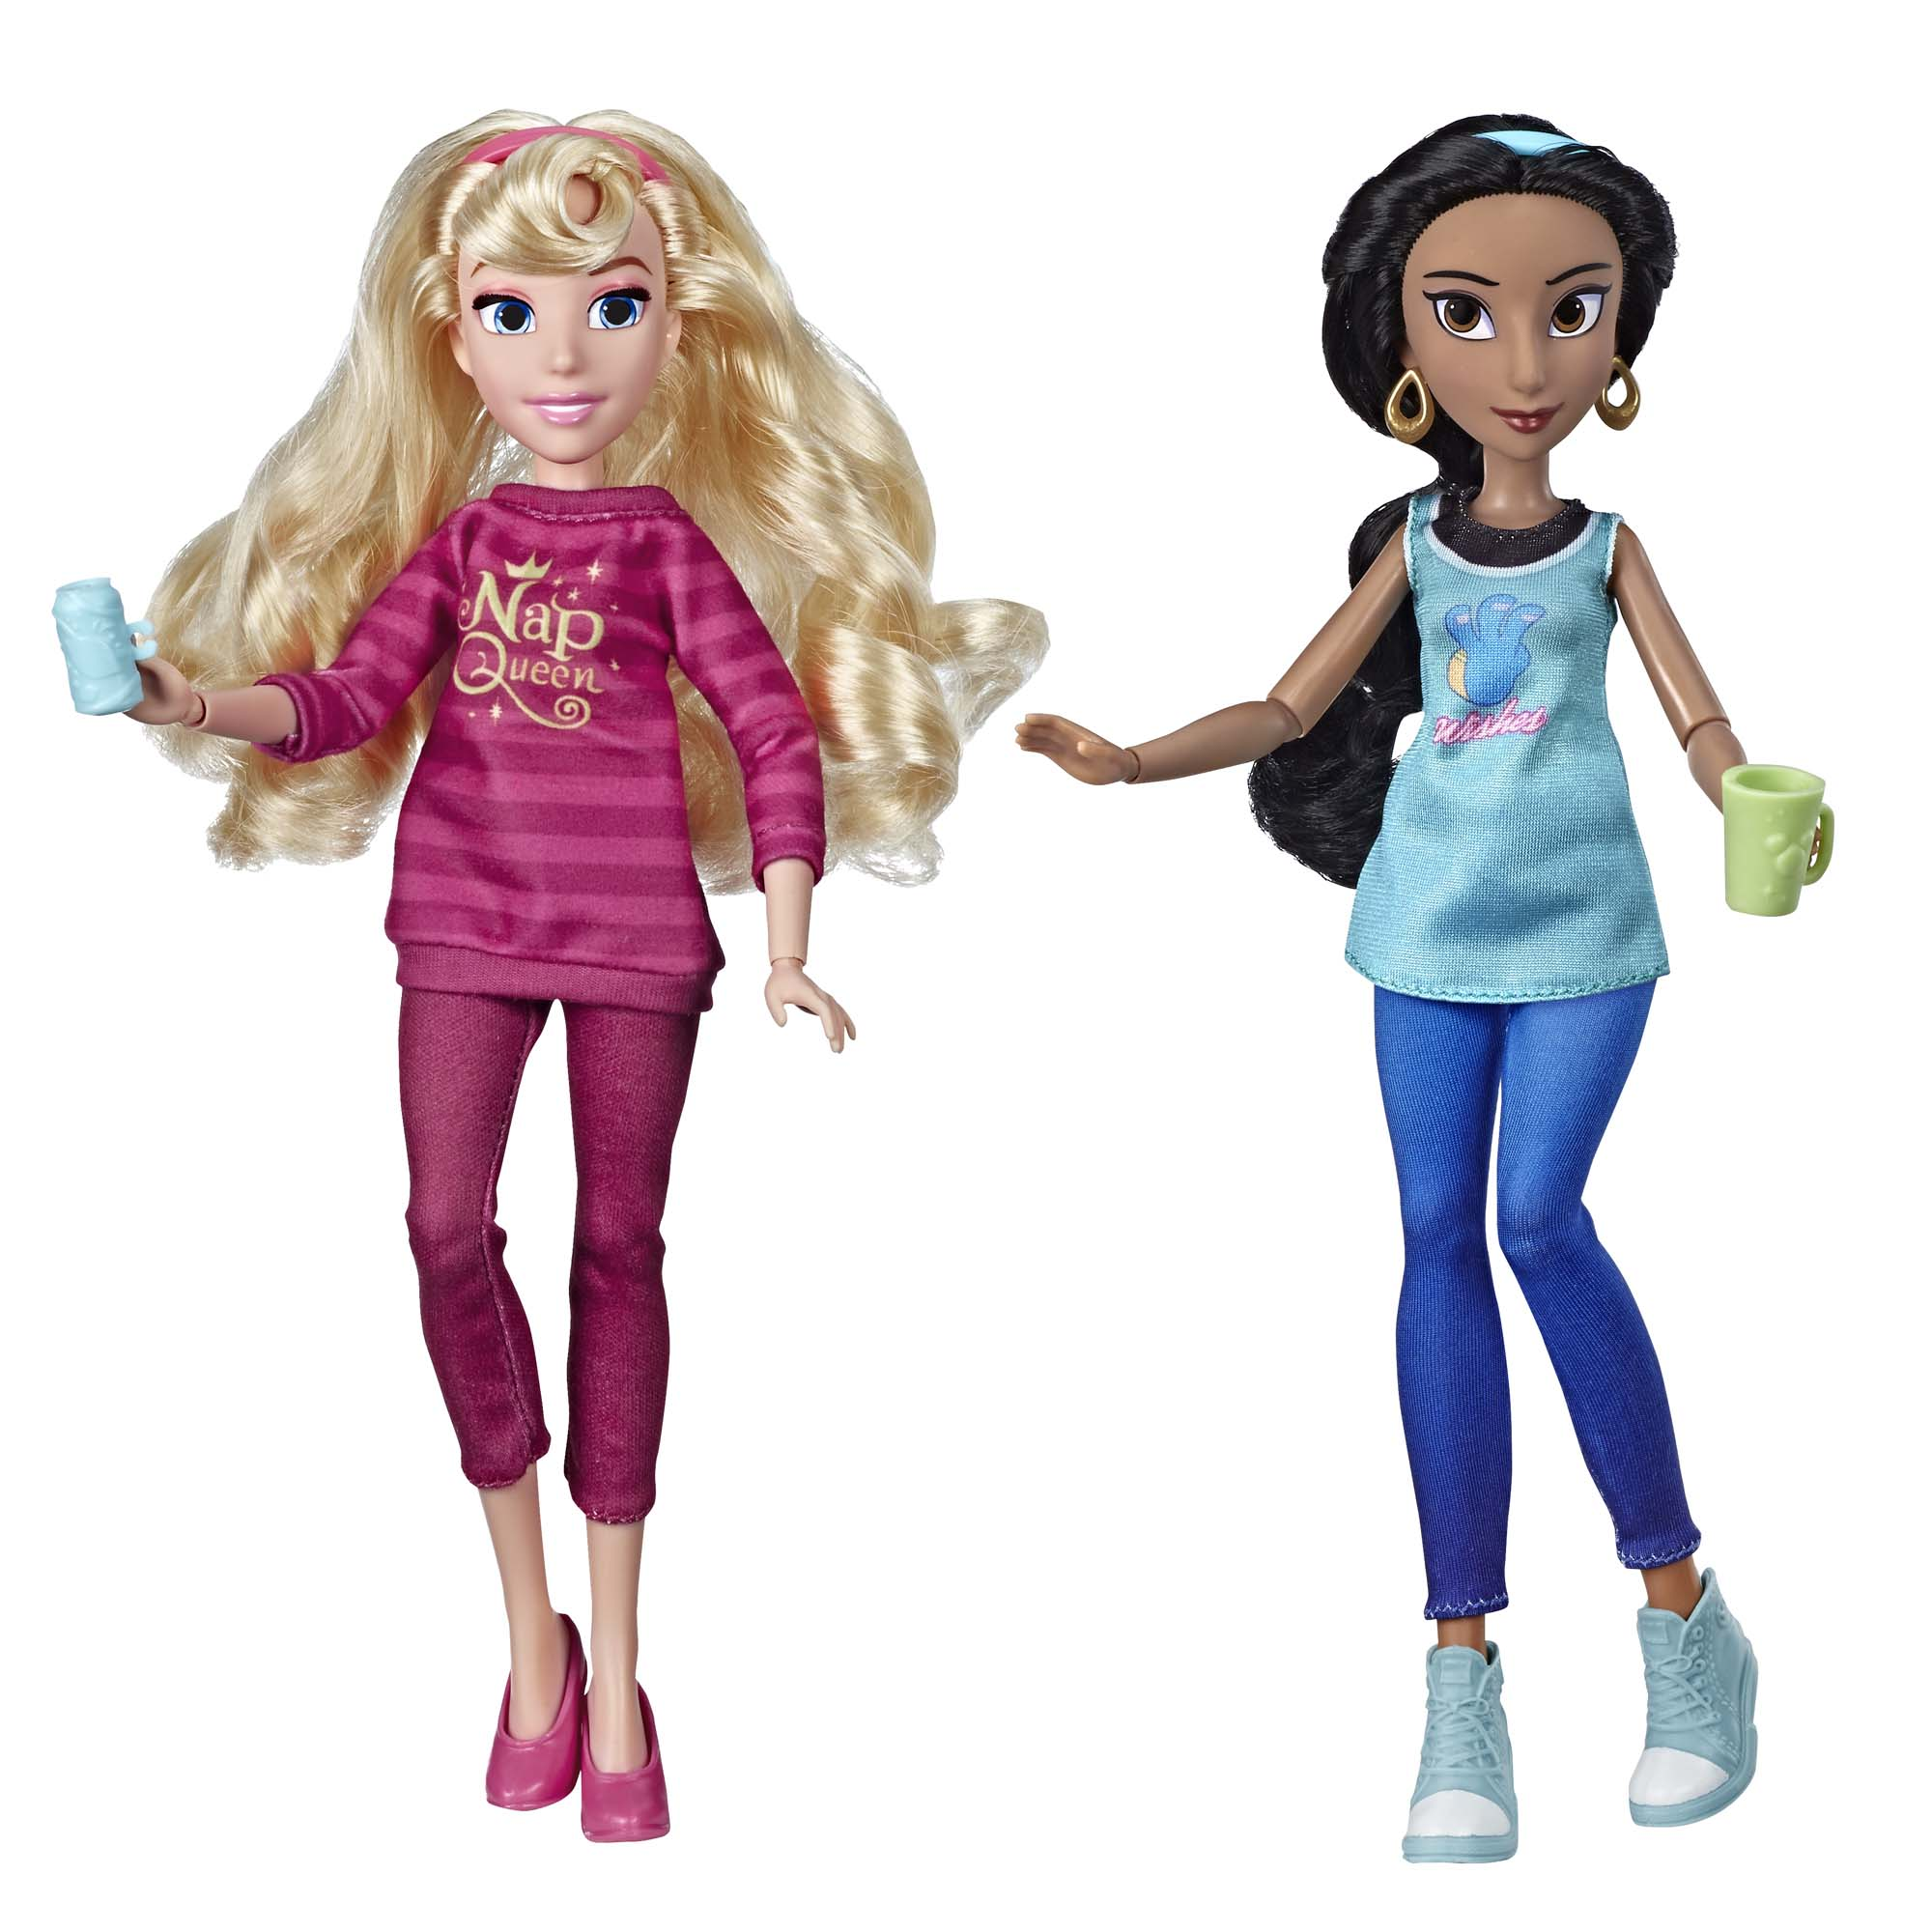 Disney Princess Ralph Breaks the Internet Movie: Jasmine and Aurora by Hasbro Inc.